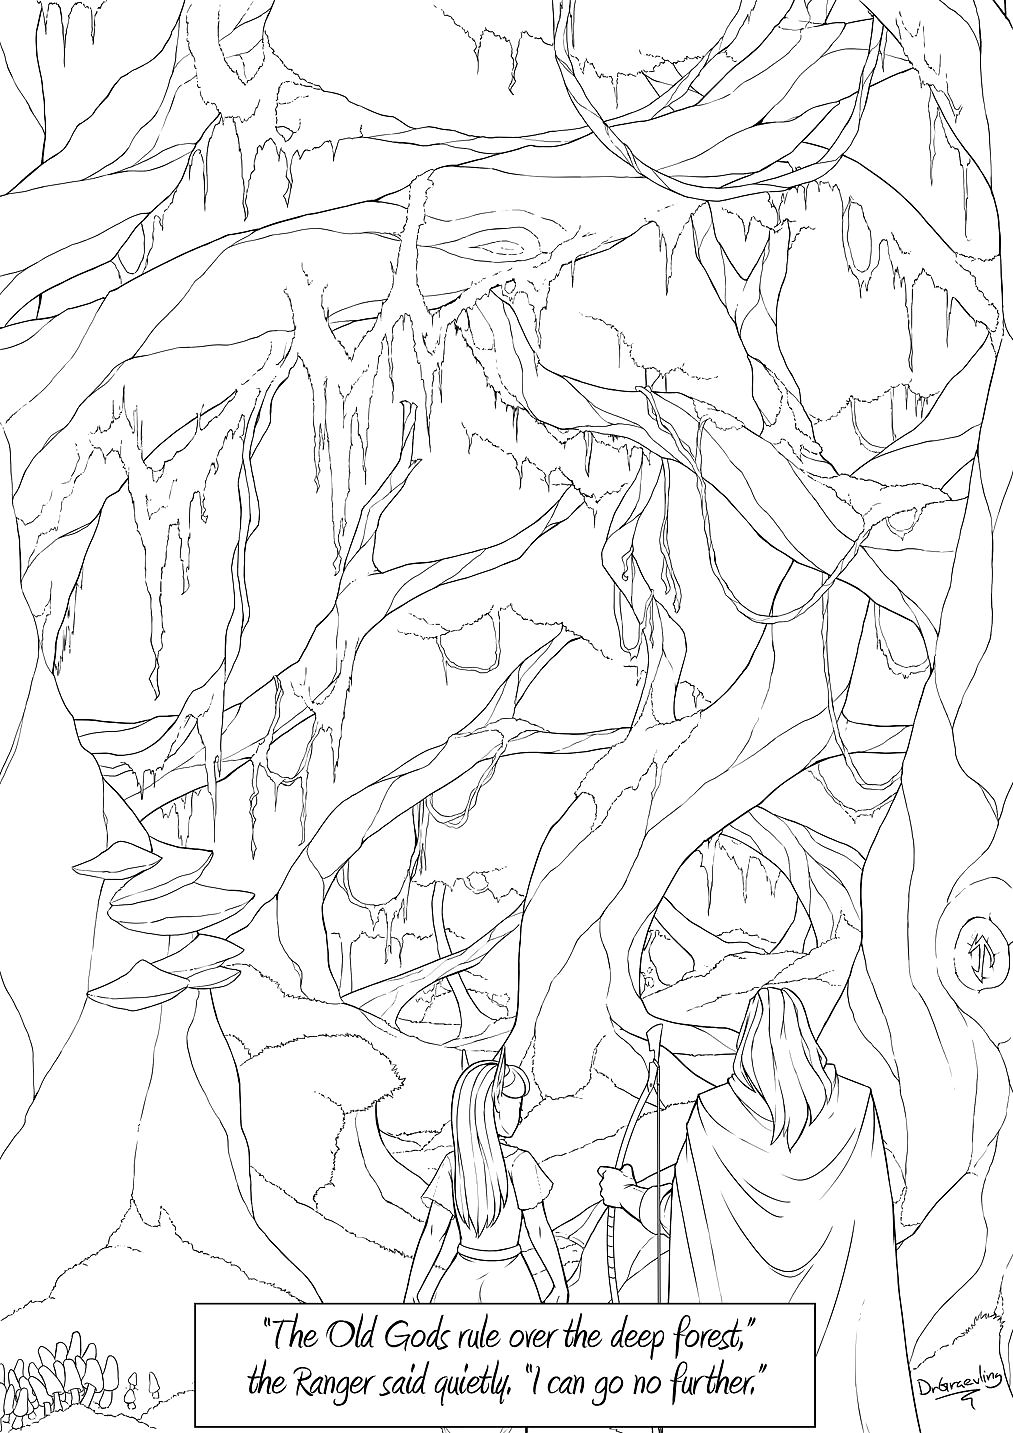 Colouring Book - part 2